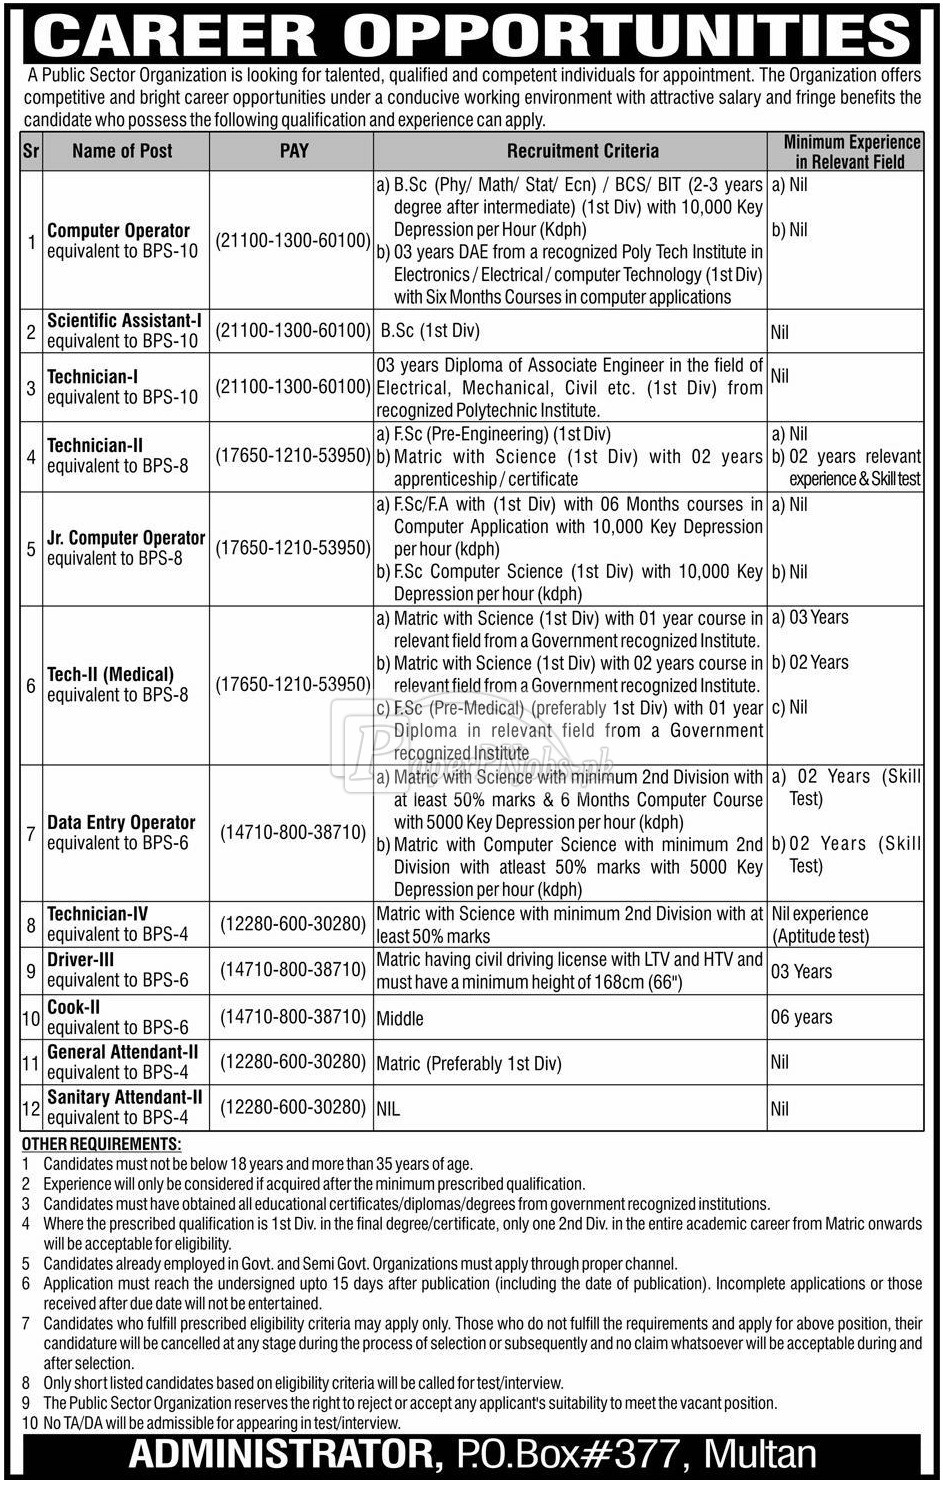 Public Sector Organization P.O.Box 377 Multan Jobs 2018